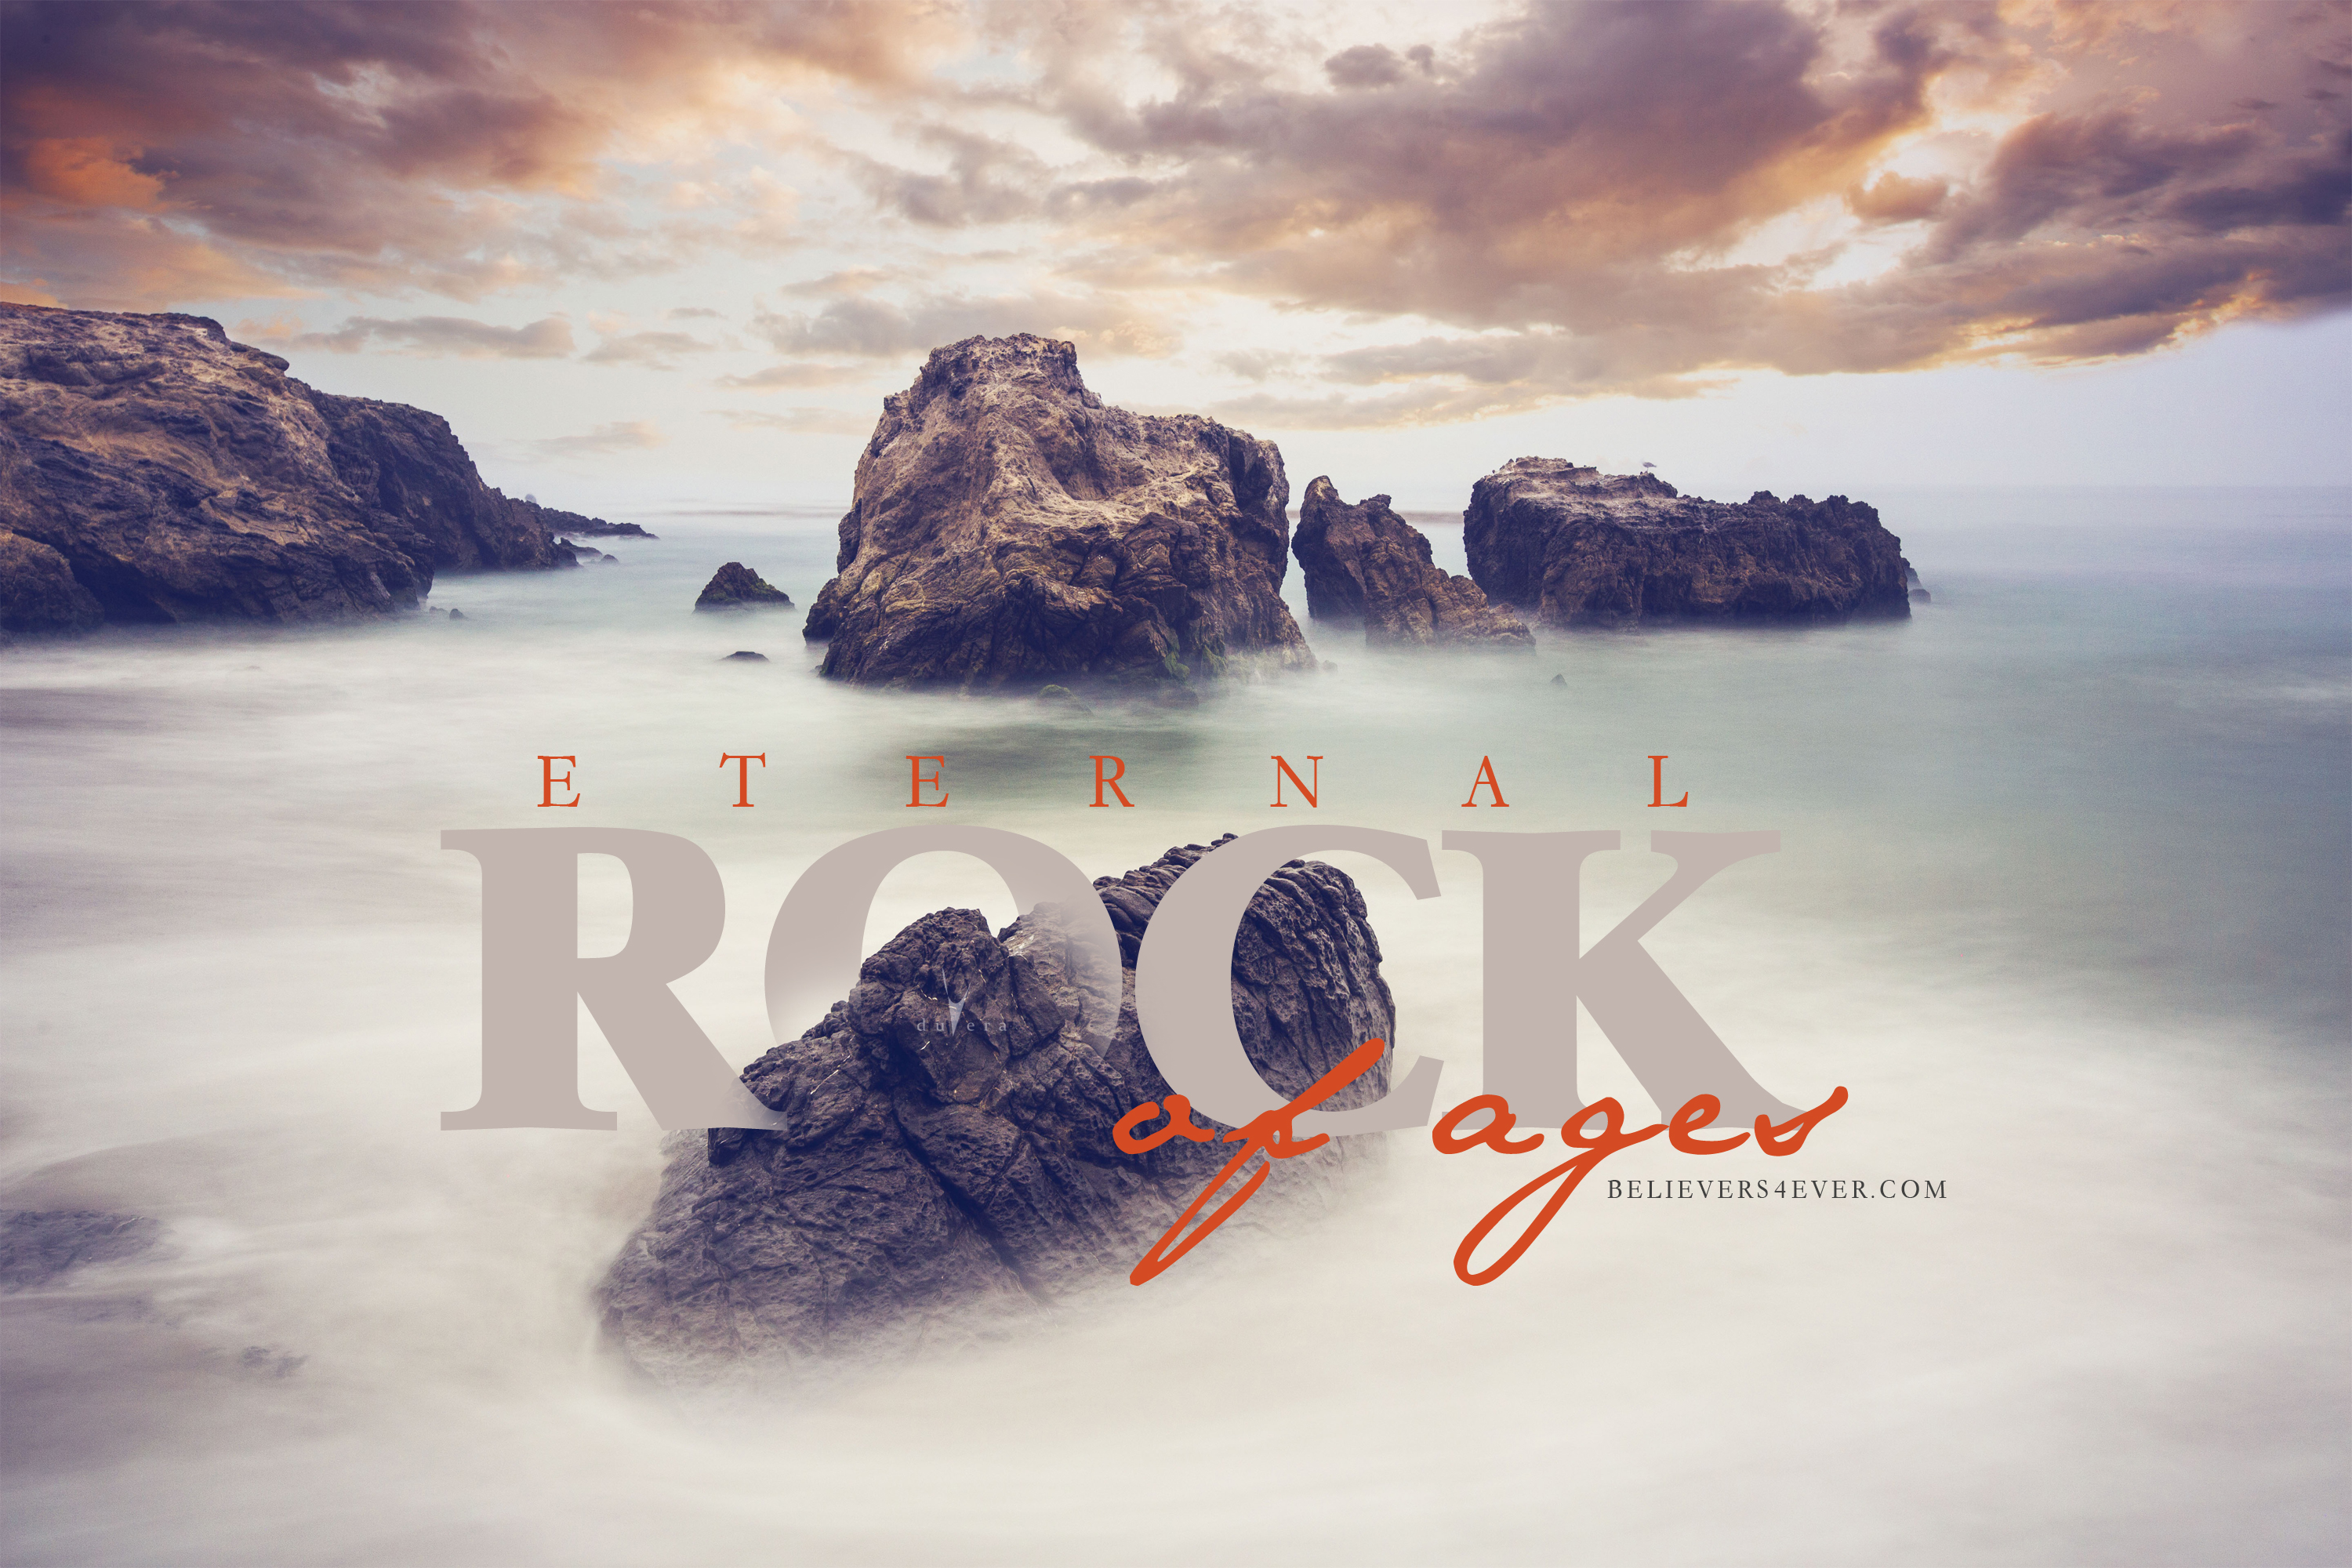 Eternal rock of ages